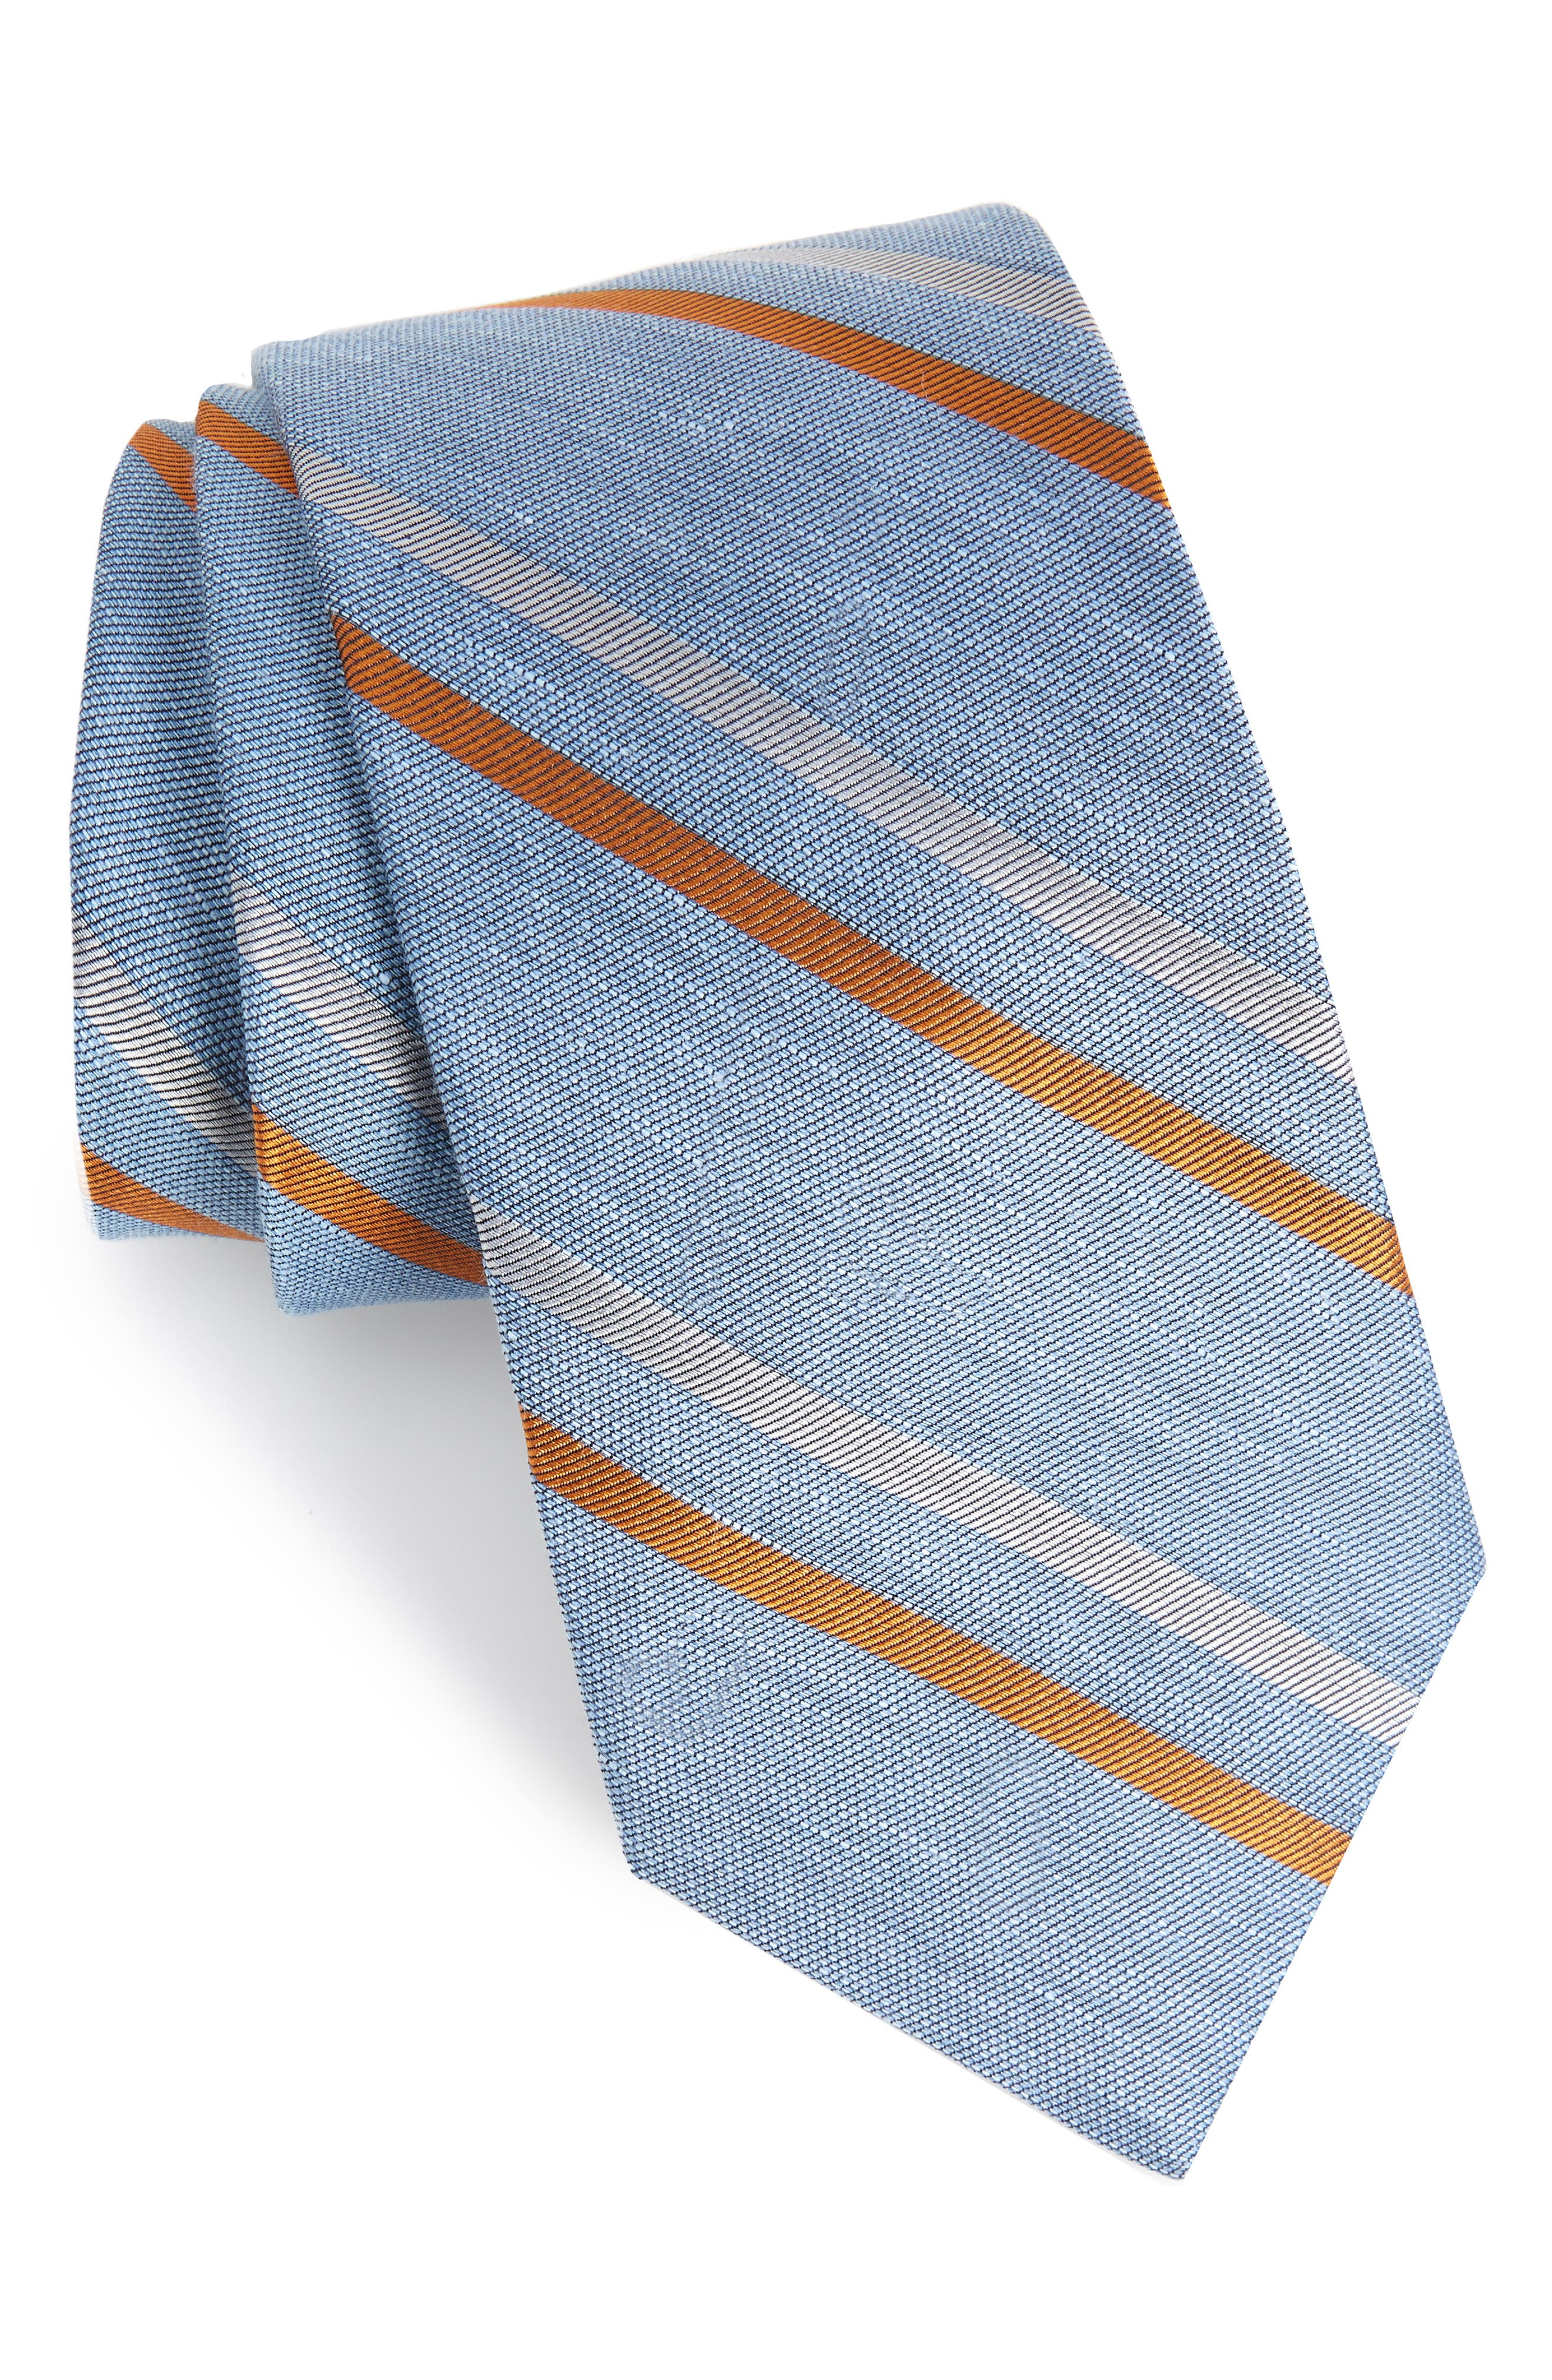 Pep Stripe Tie,                             Main thumbnail 1, color,                             Light Blue